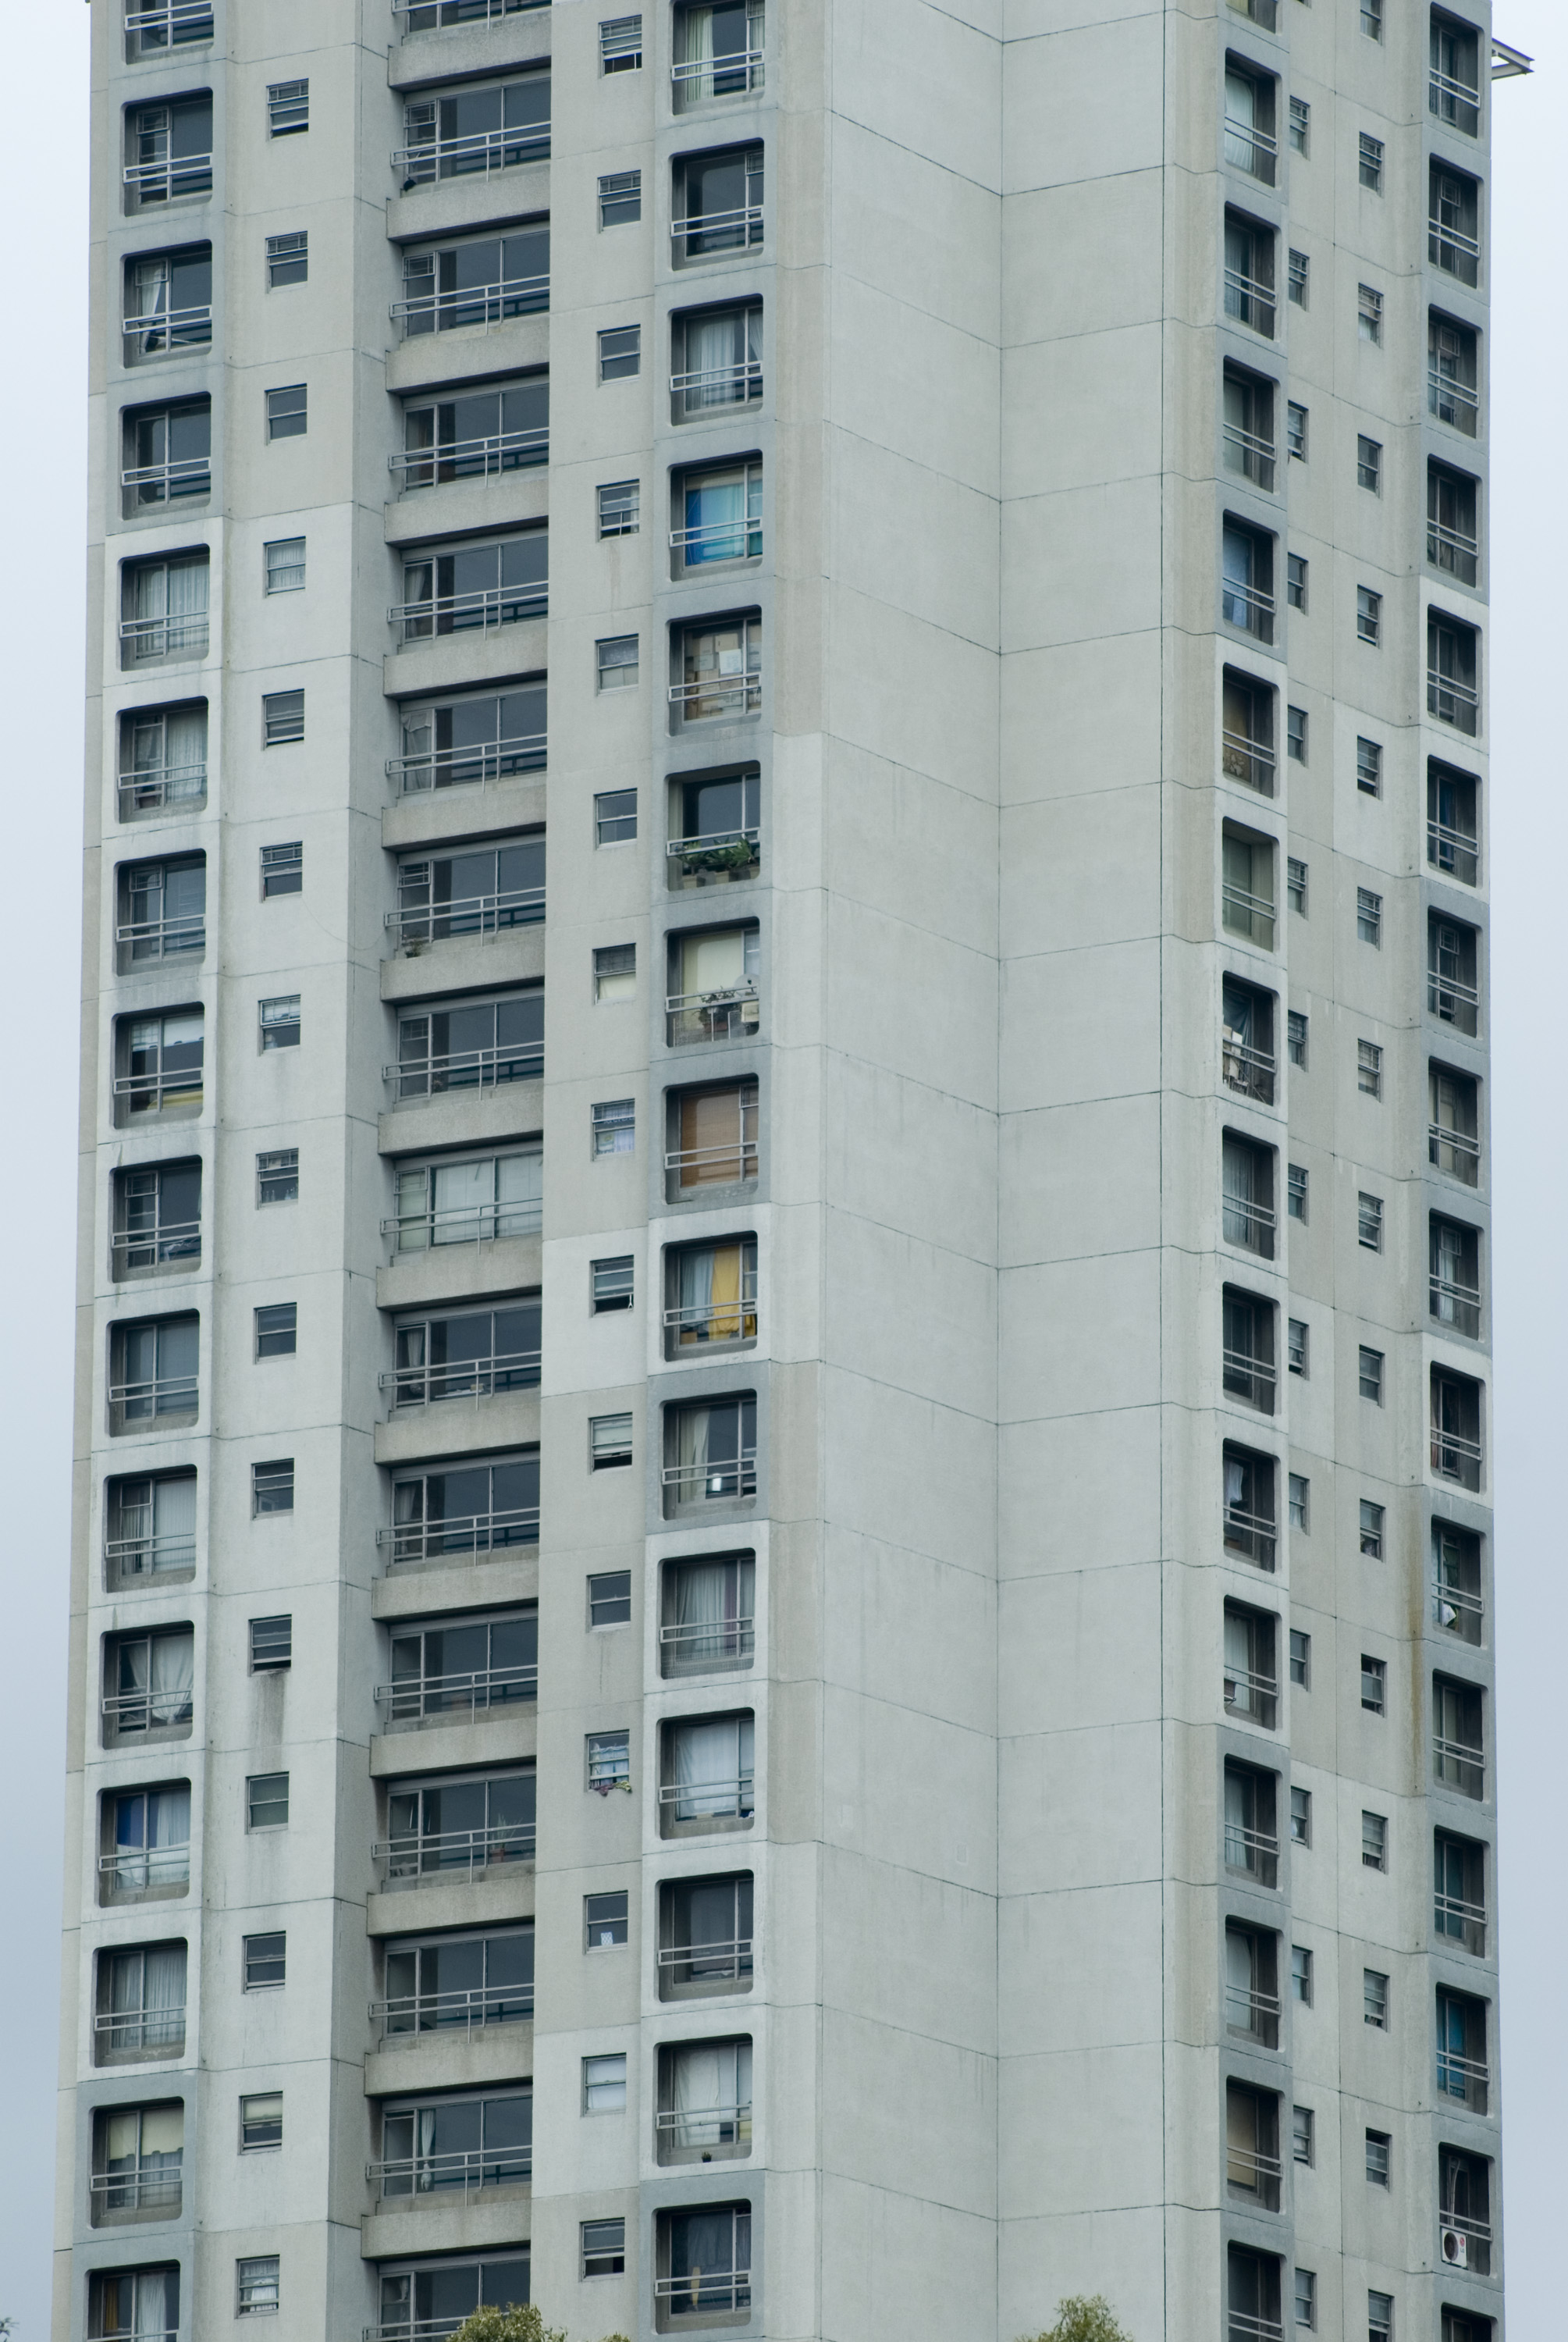 concrete towers, urban living